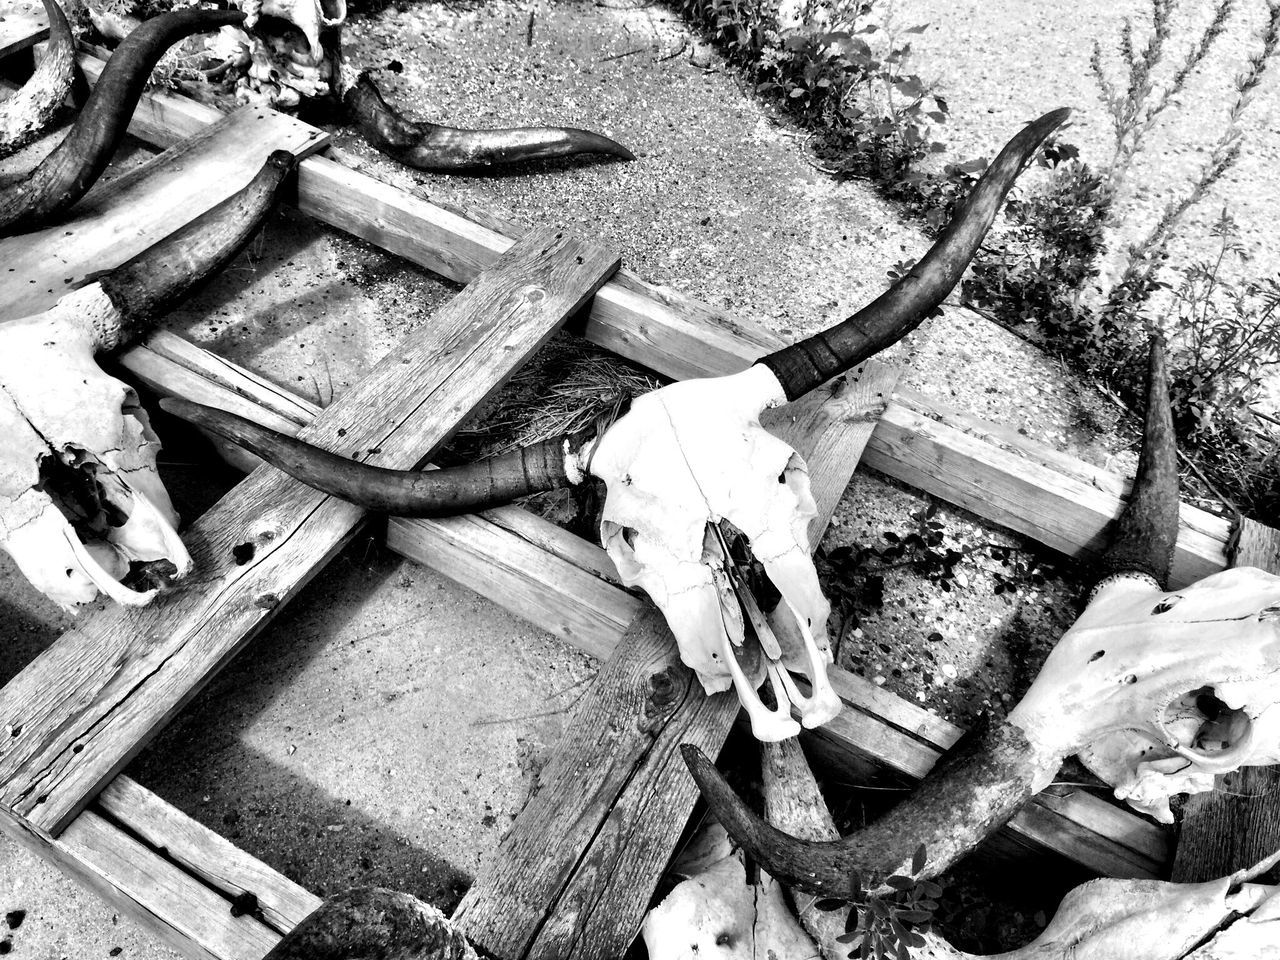 High Angle View Of Cattle Skulls On Farm